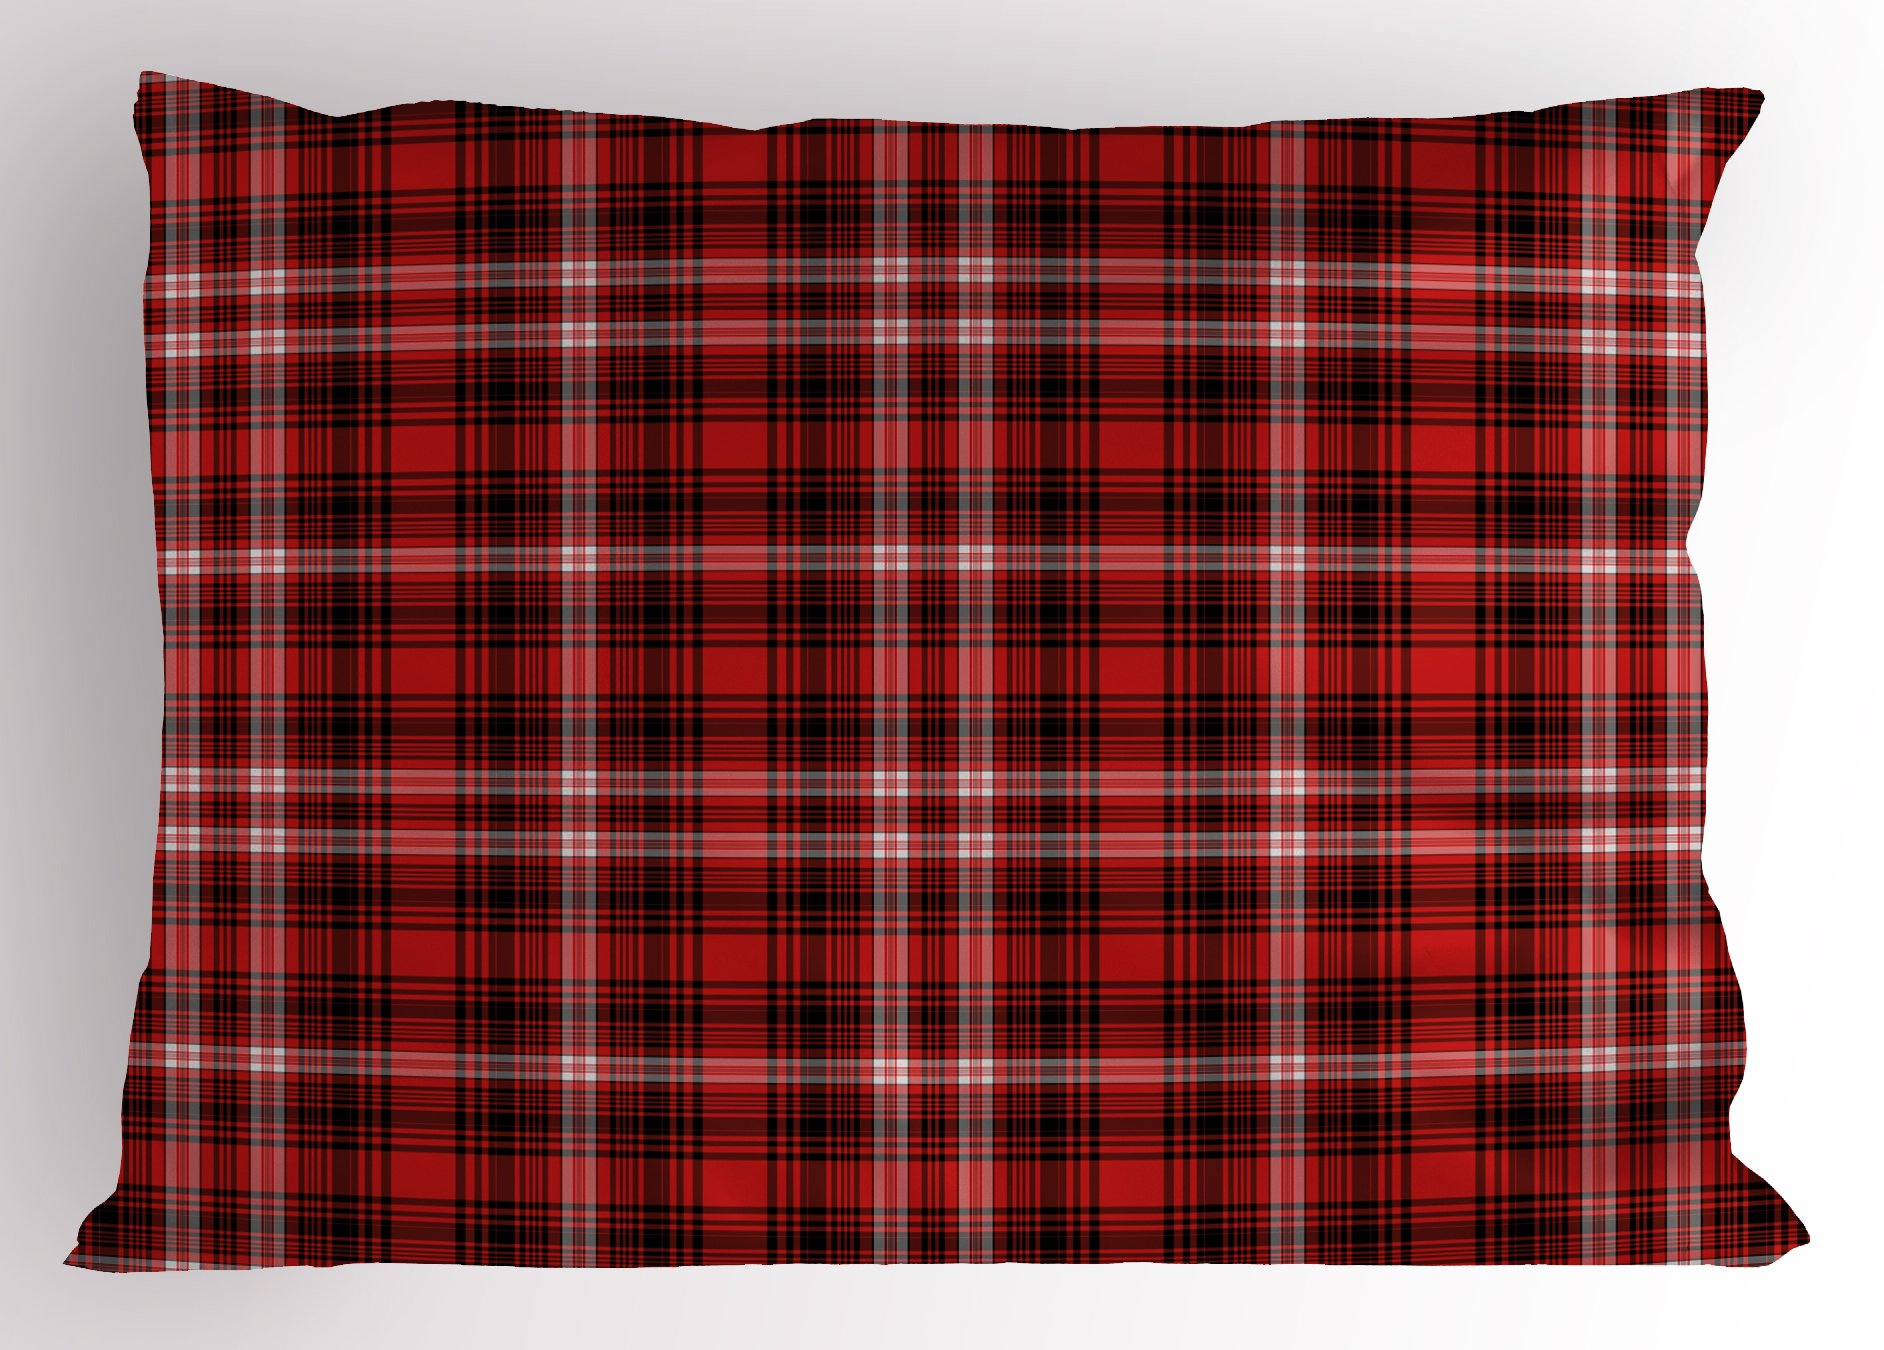 Ambesonne Plaid Pillow Sham, Nostalgic Striped Pattern from British Country with Constrasting Colors, Decorative Standard Queen Size Printed Pillowcase, 30 X 20 inches, Scarlet Black White